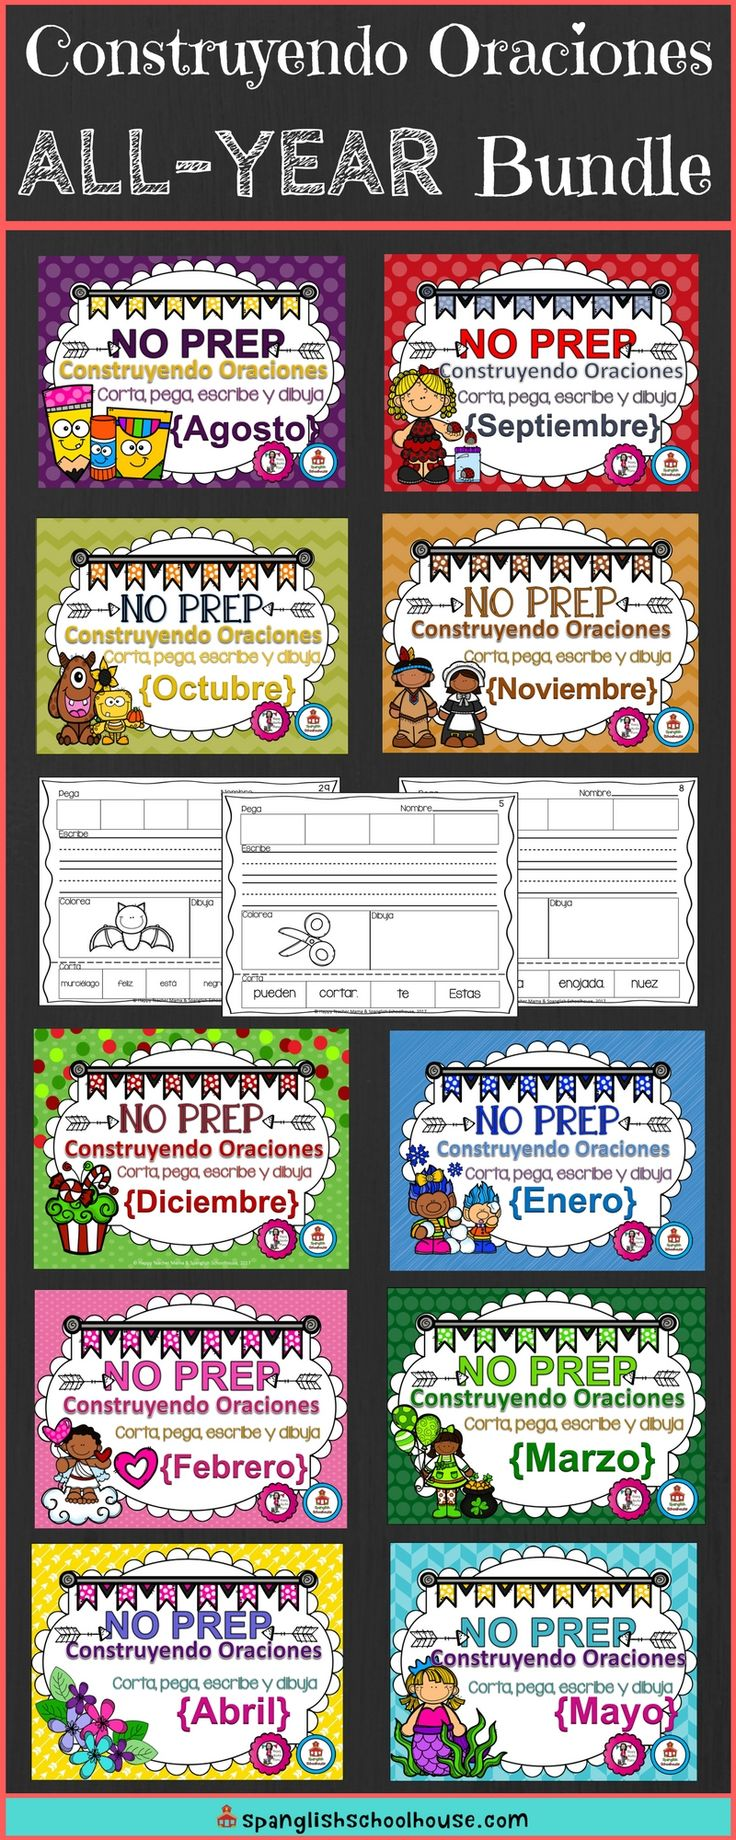 Do your Spanish students need help mastering sentences? This All-Year Sentence Building pack contains 10 months of cut and paste Spanish grammar practice. Over 300 pages perfect for you Kindergarten Spanish Immersion students!